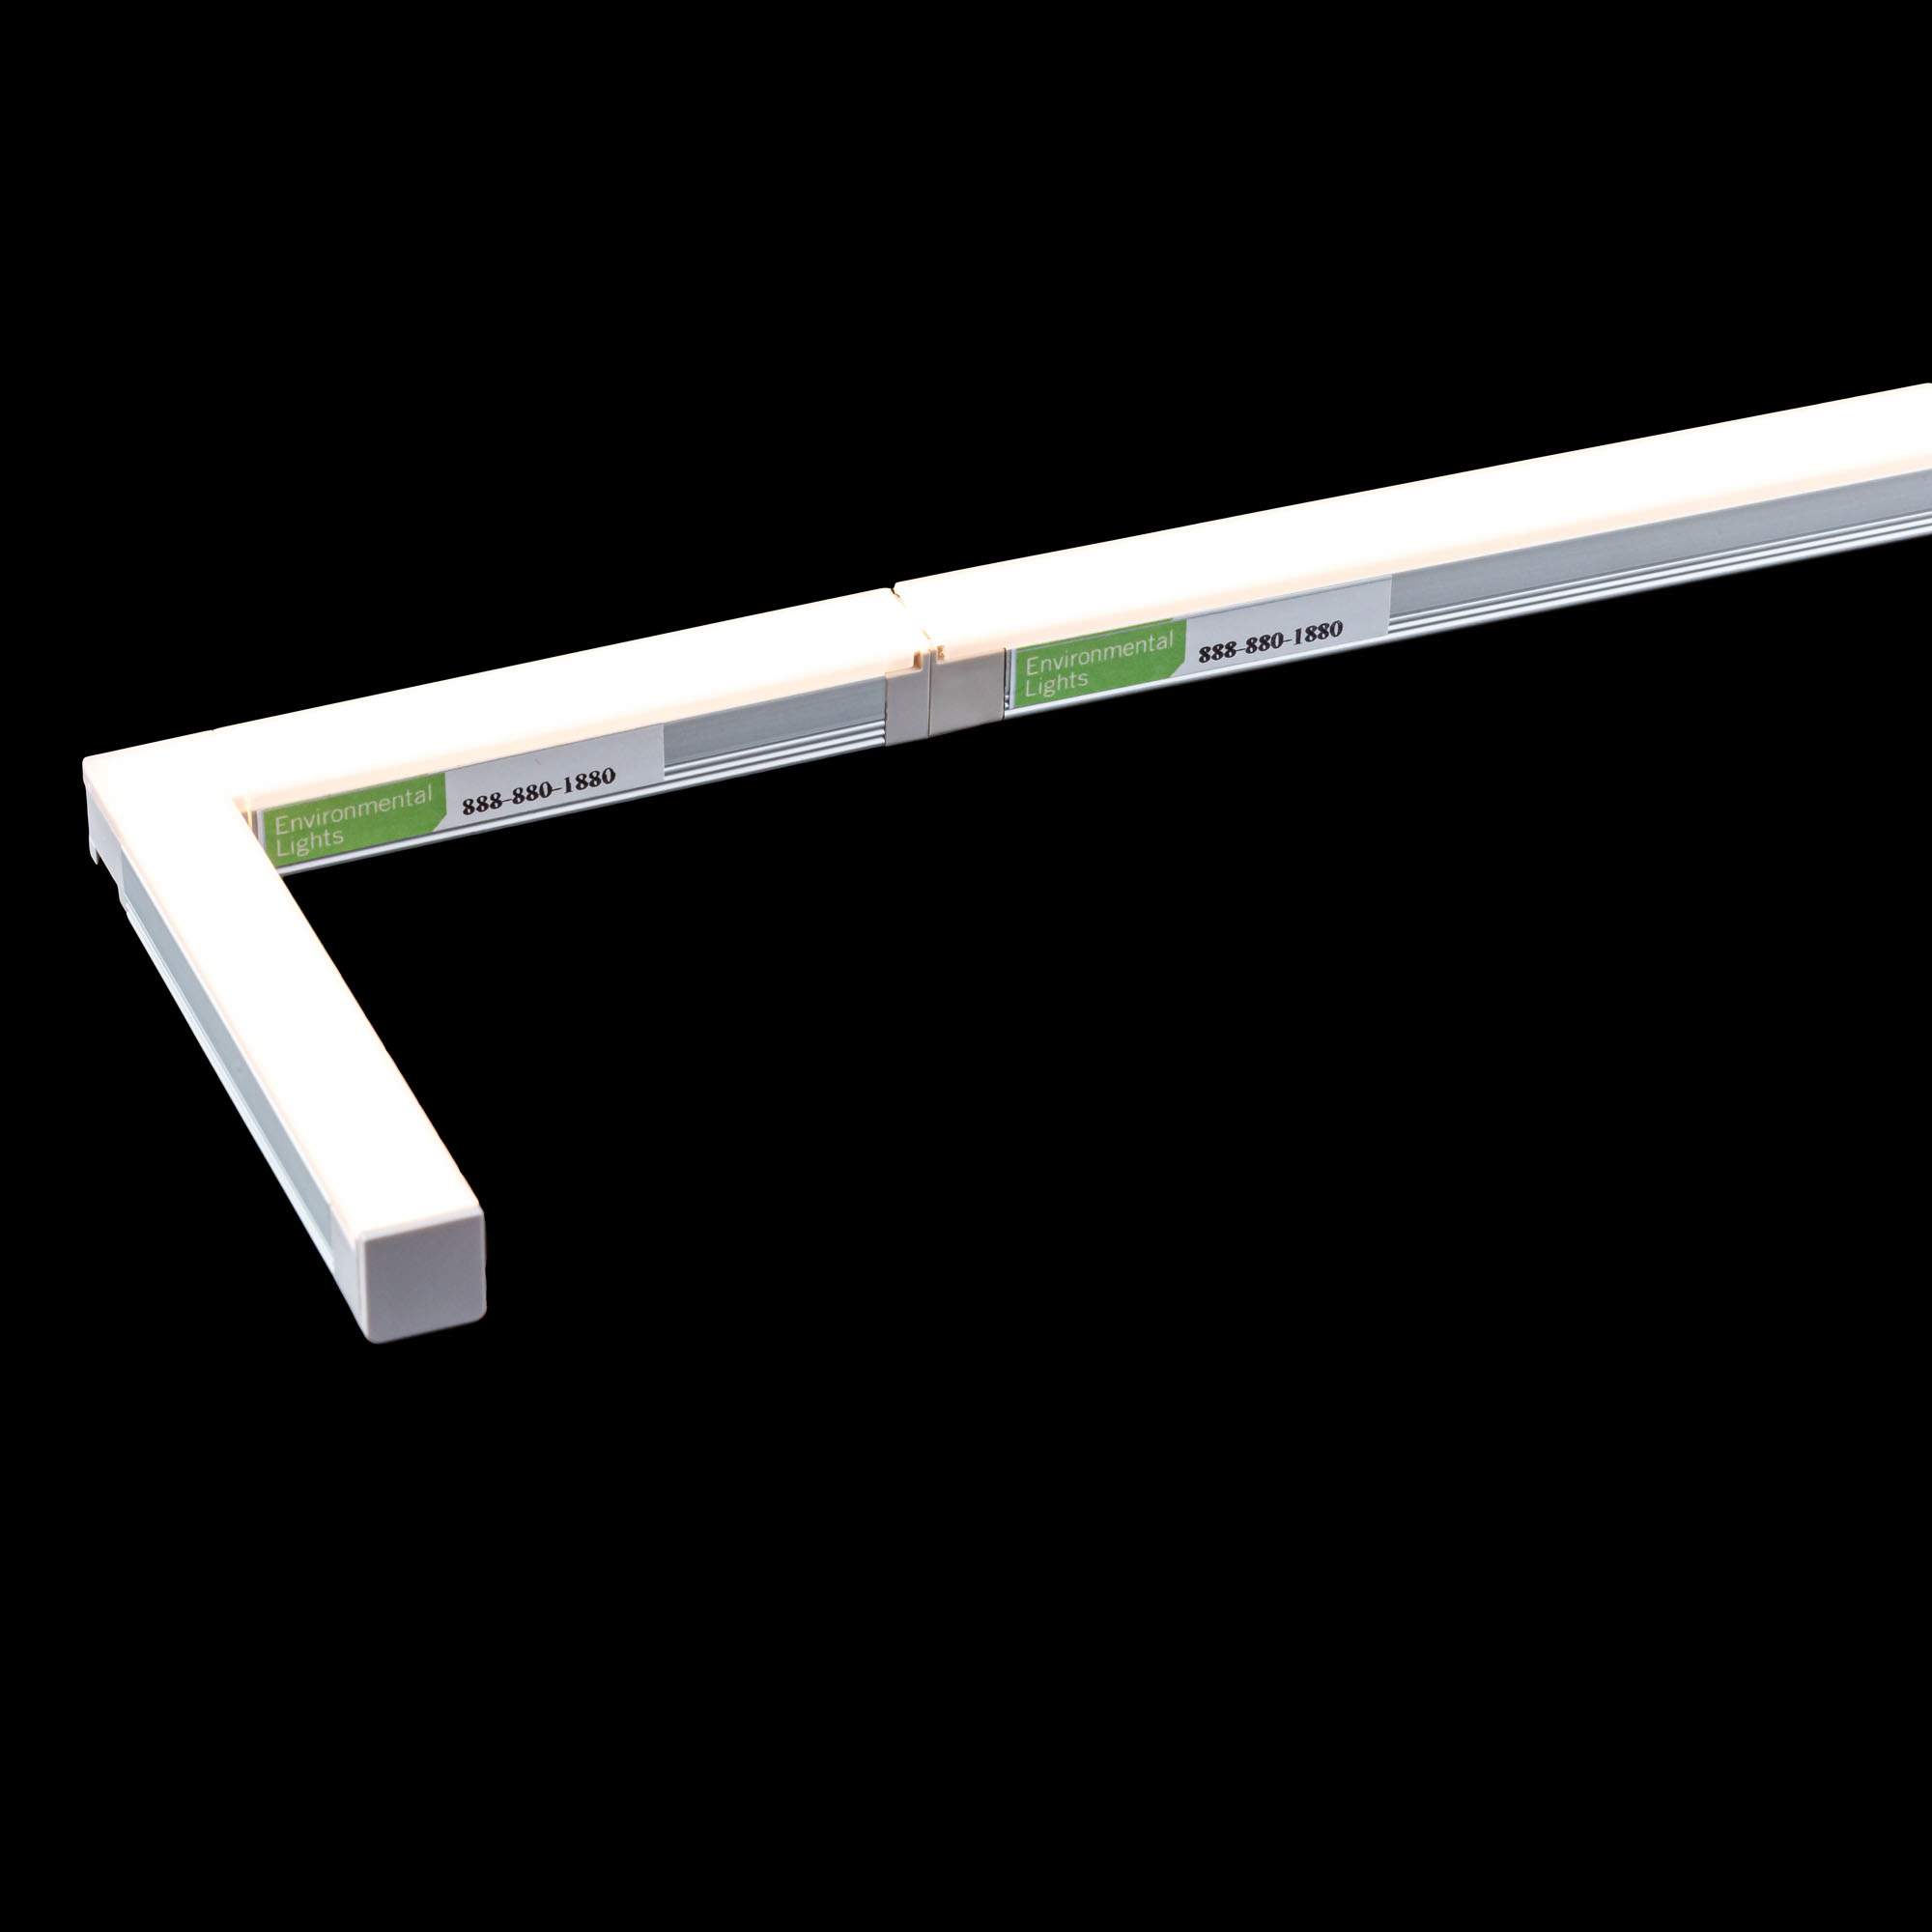 LED Light Bars Enable UL-Listed Lighting Applications